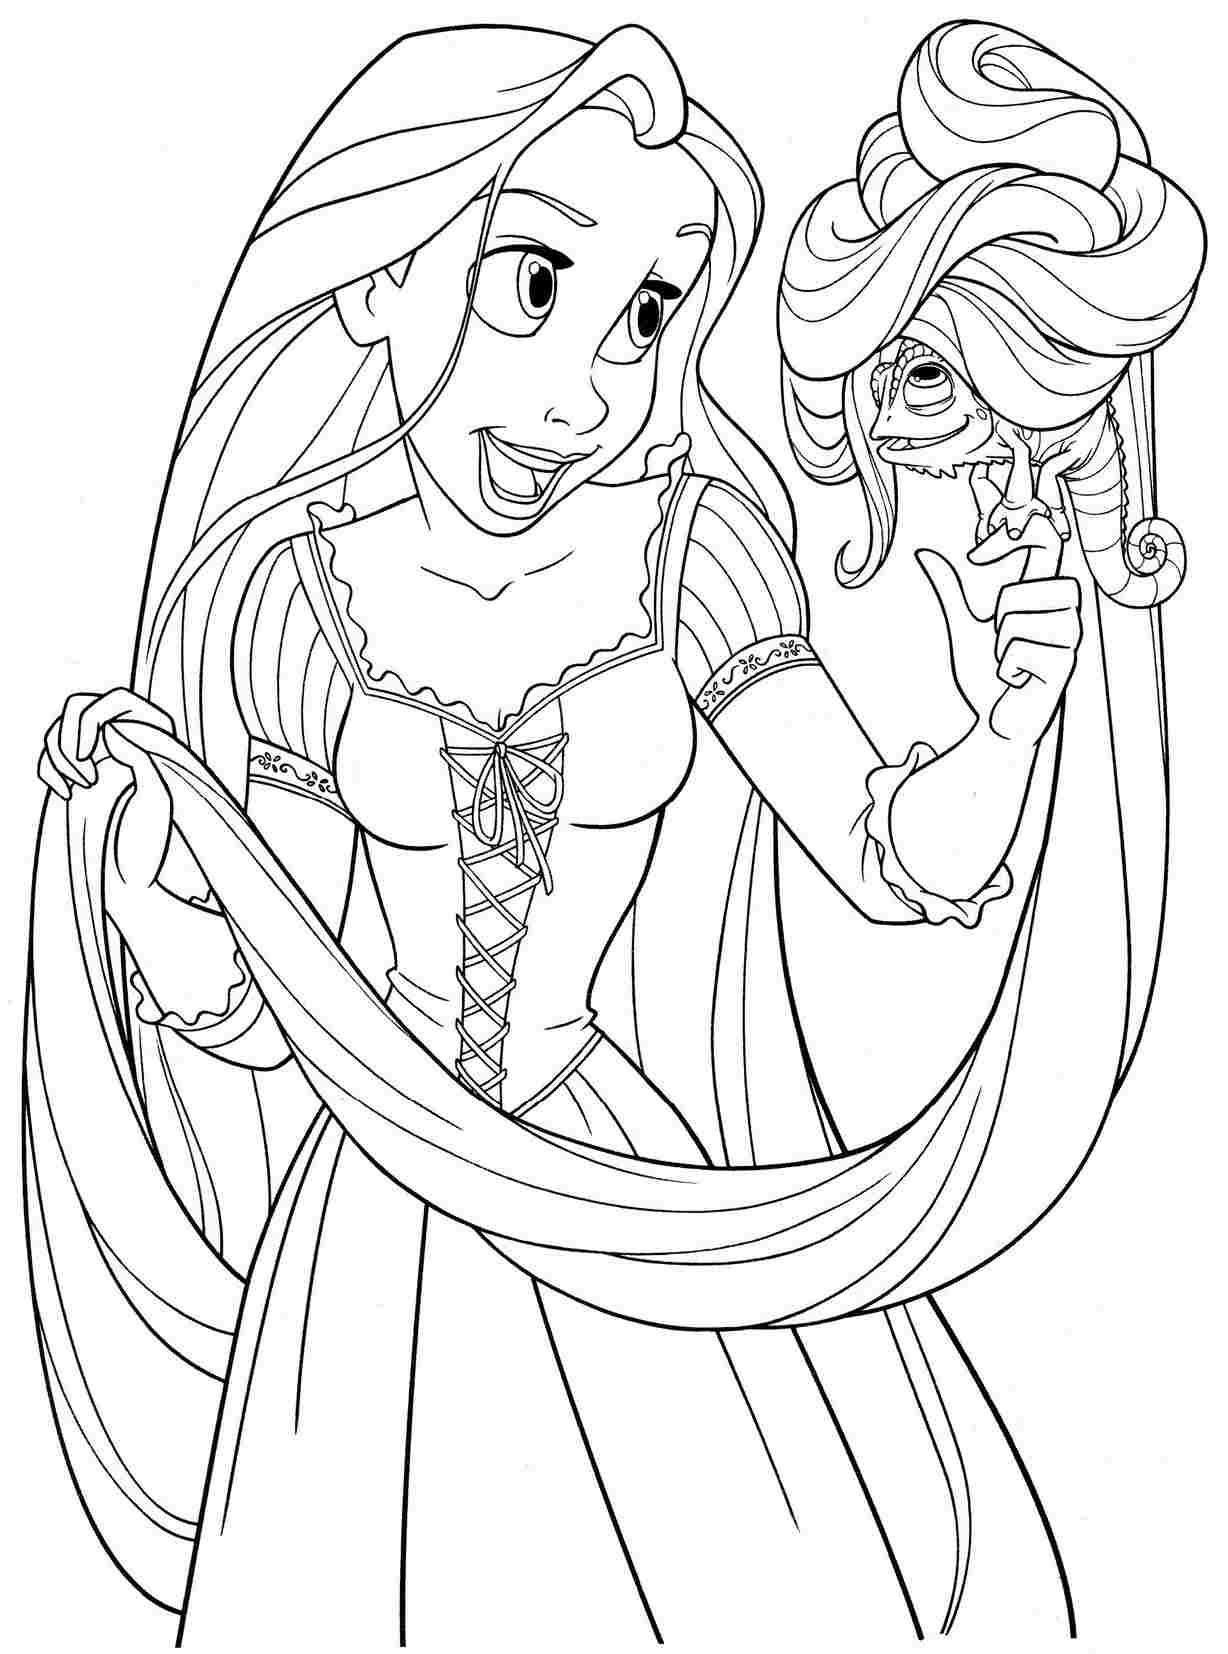 tangled coloring page rapunzel coloring pages best coloring pages for kids tangled coloring page 1 1